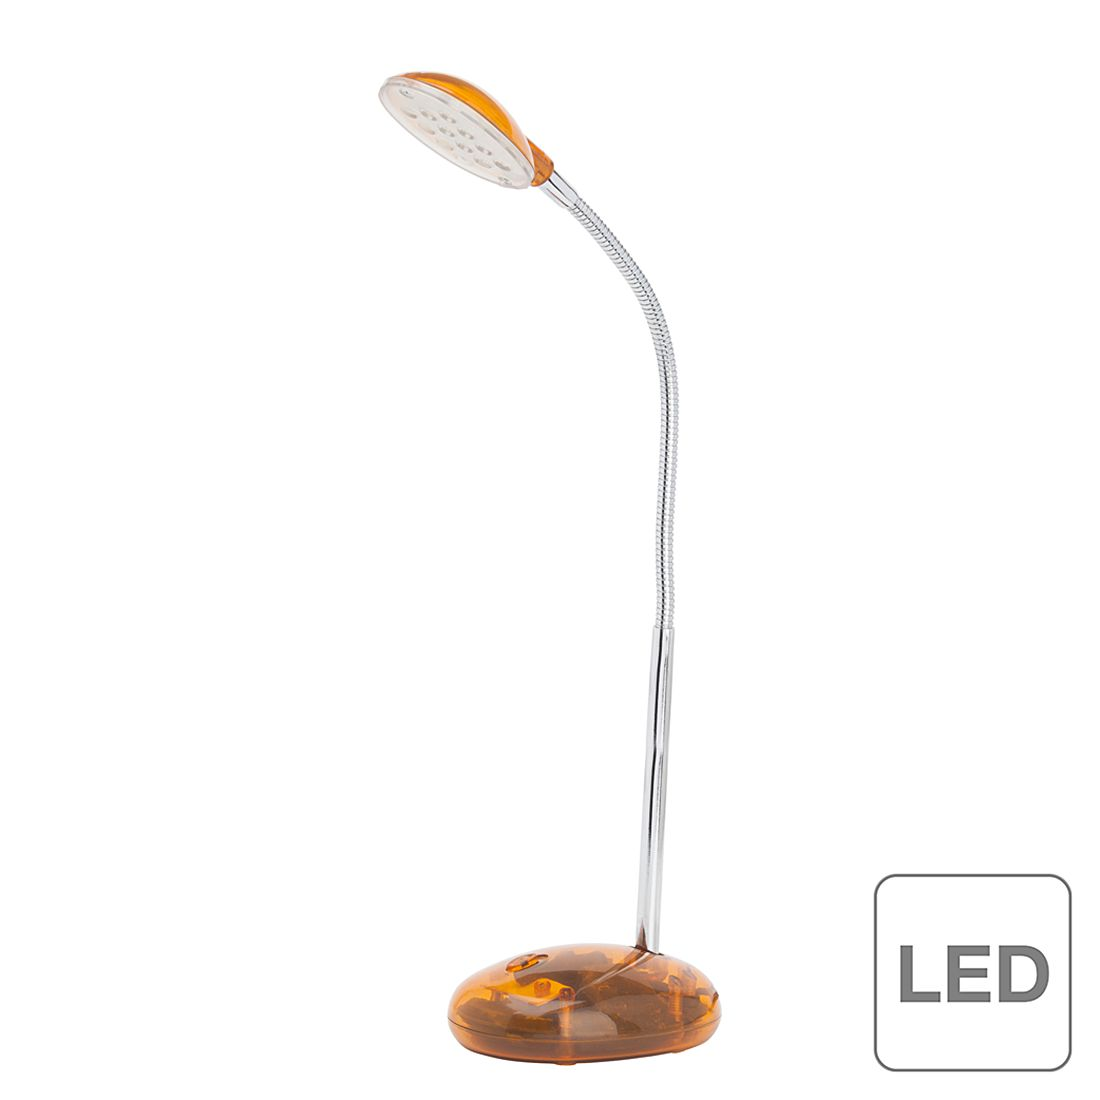 LED-Tischleuchte Timmi ● Metall / Kunststoff ● 1-flammig ● Orange- Brilliant A+